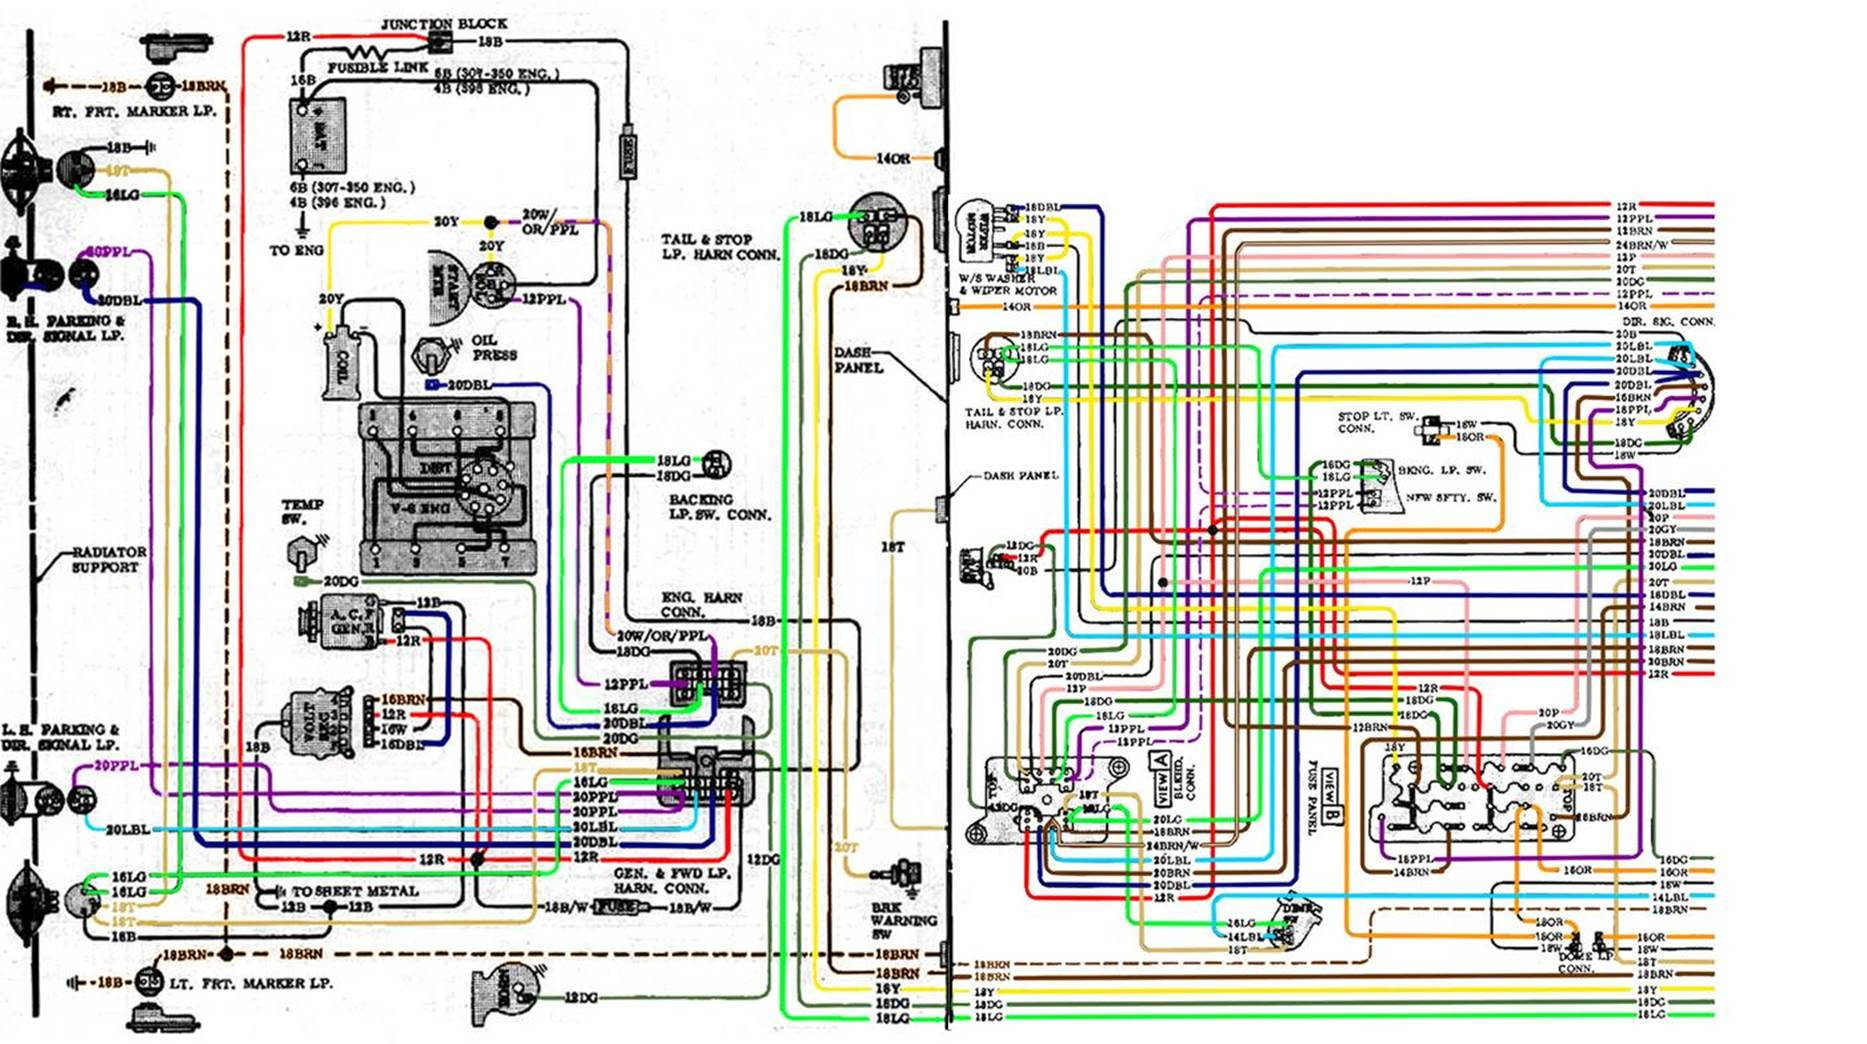 image002 67 72 chevy wiring diagram 67 chevelle wiring diagram at creativeand.co